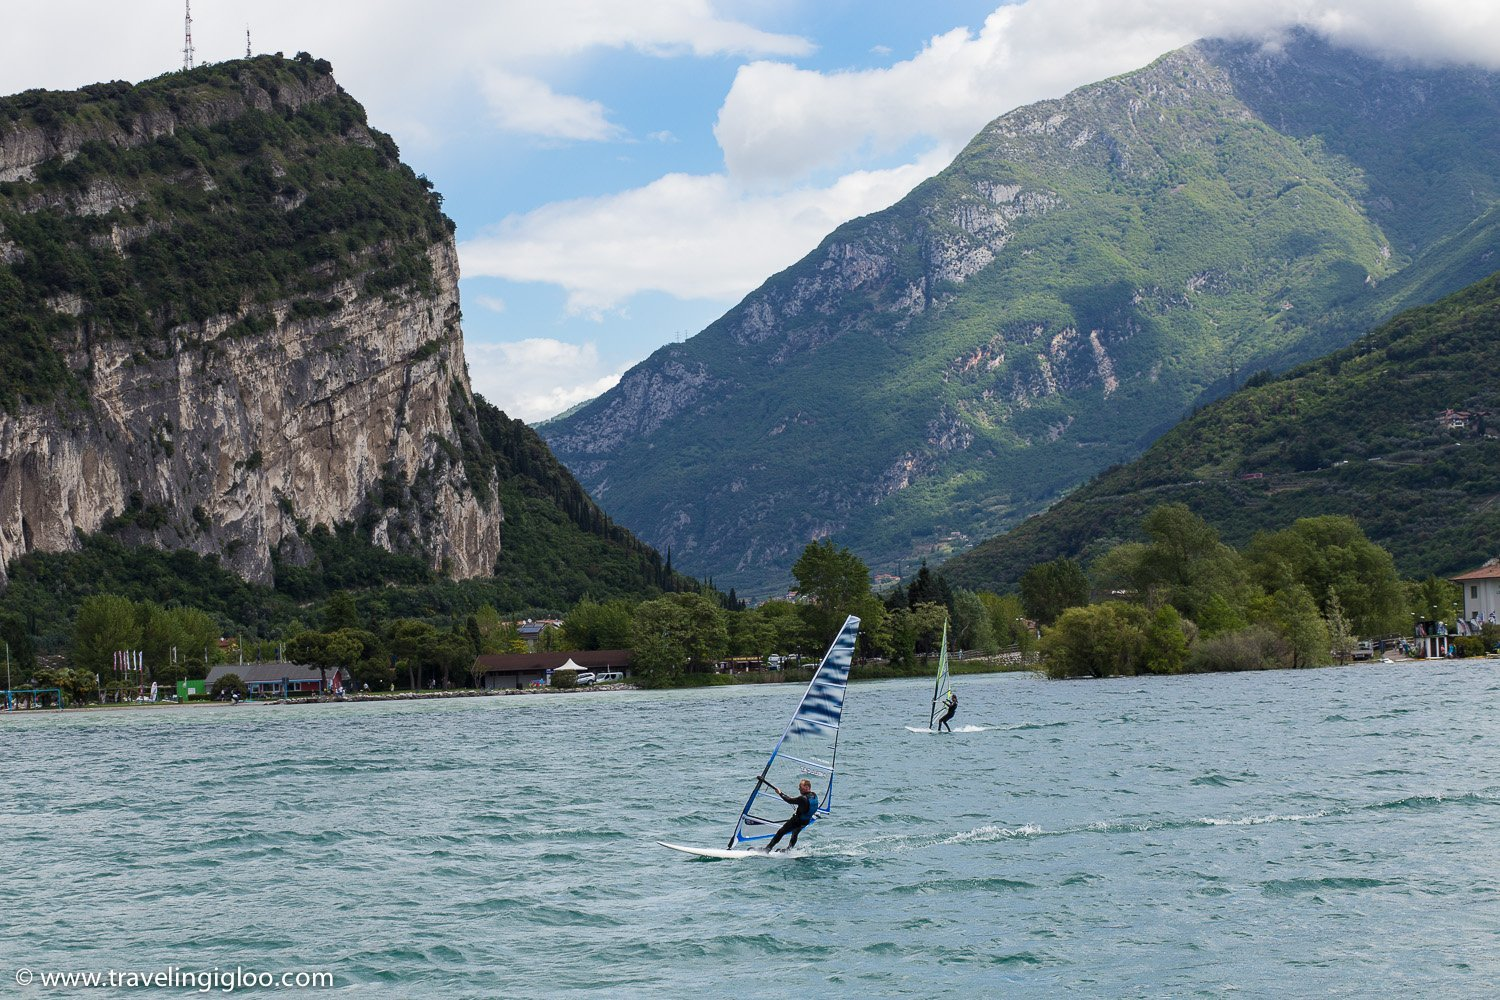 Windsurfing Lake Garda Italy